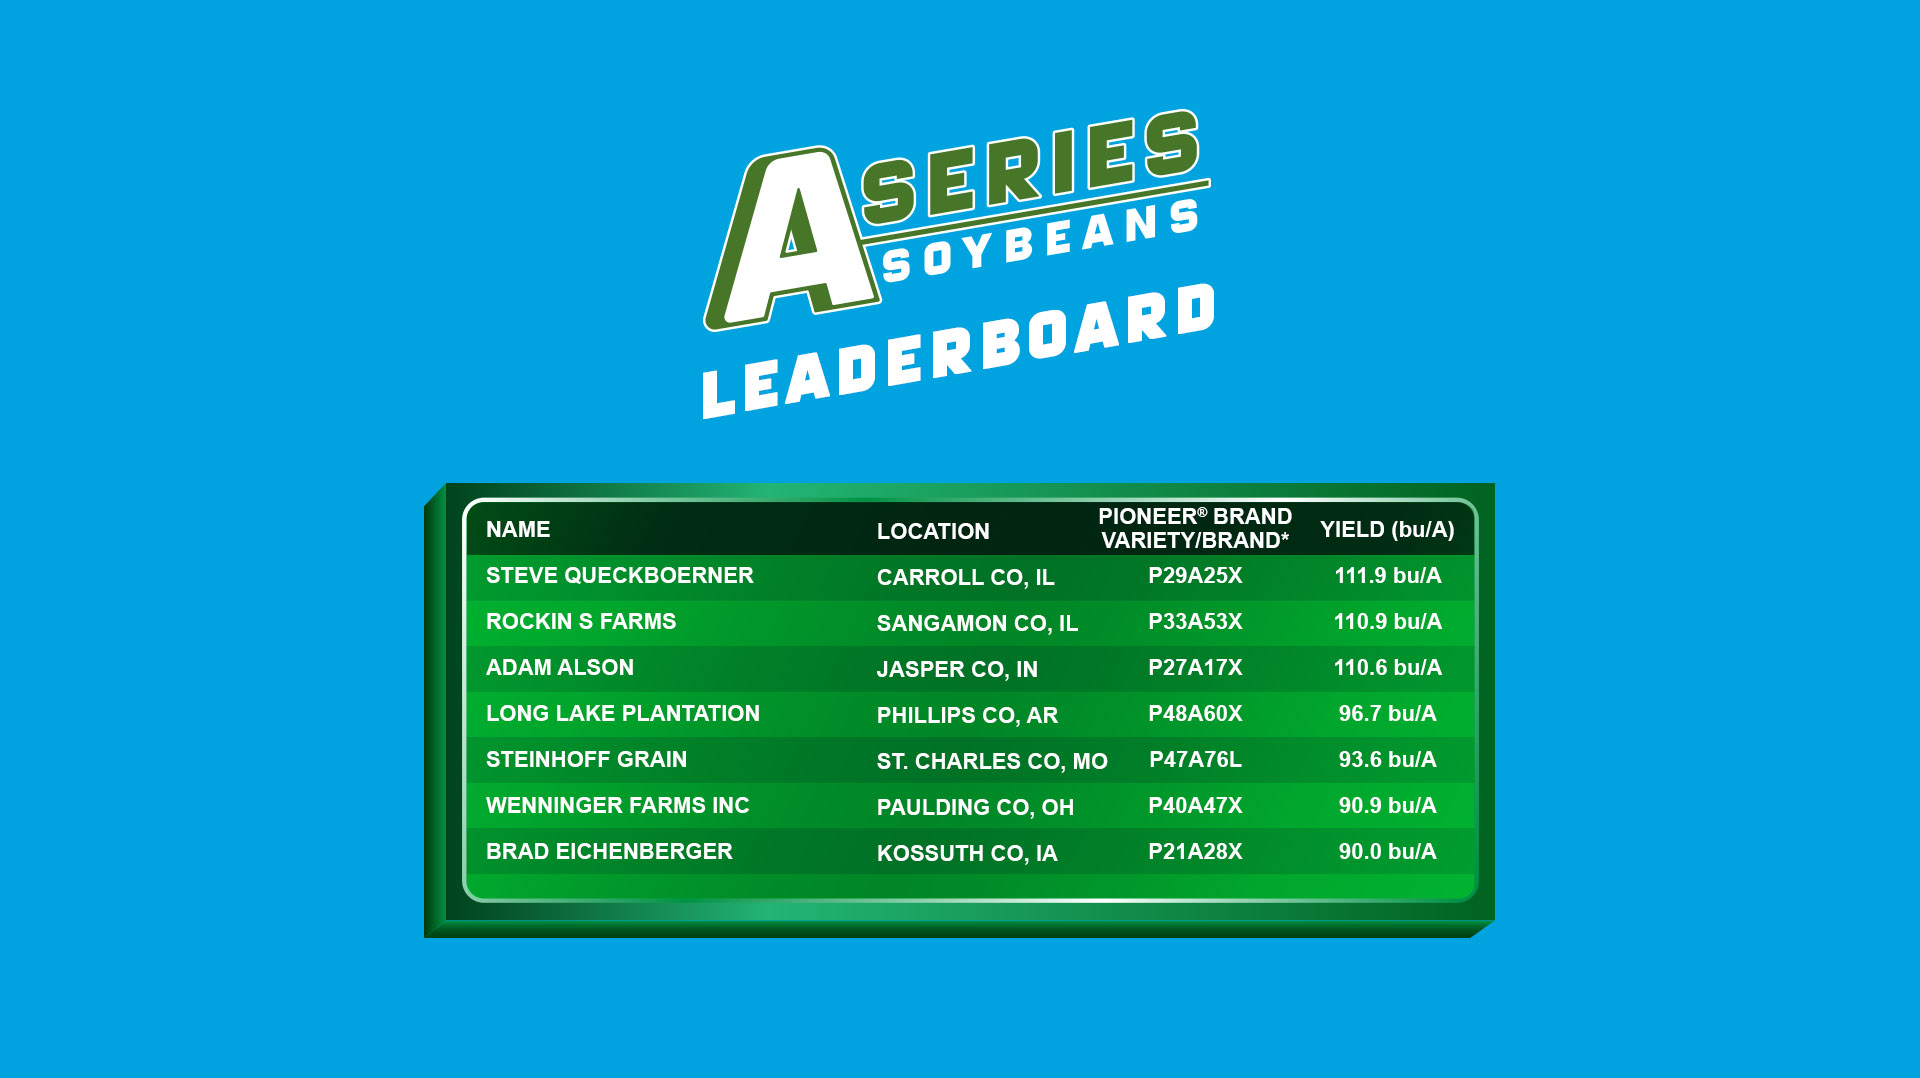 Years Ahead. Yields Above. A-Series Soybeans.